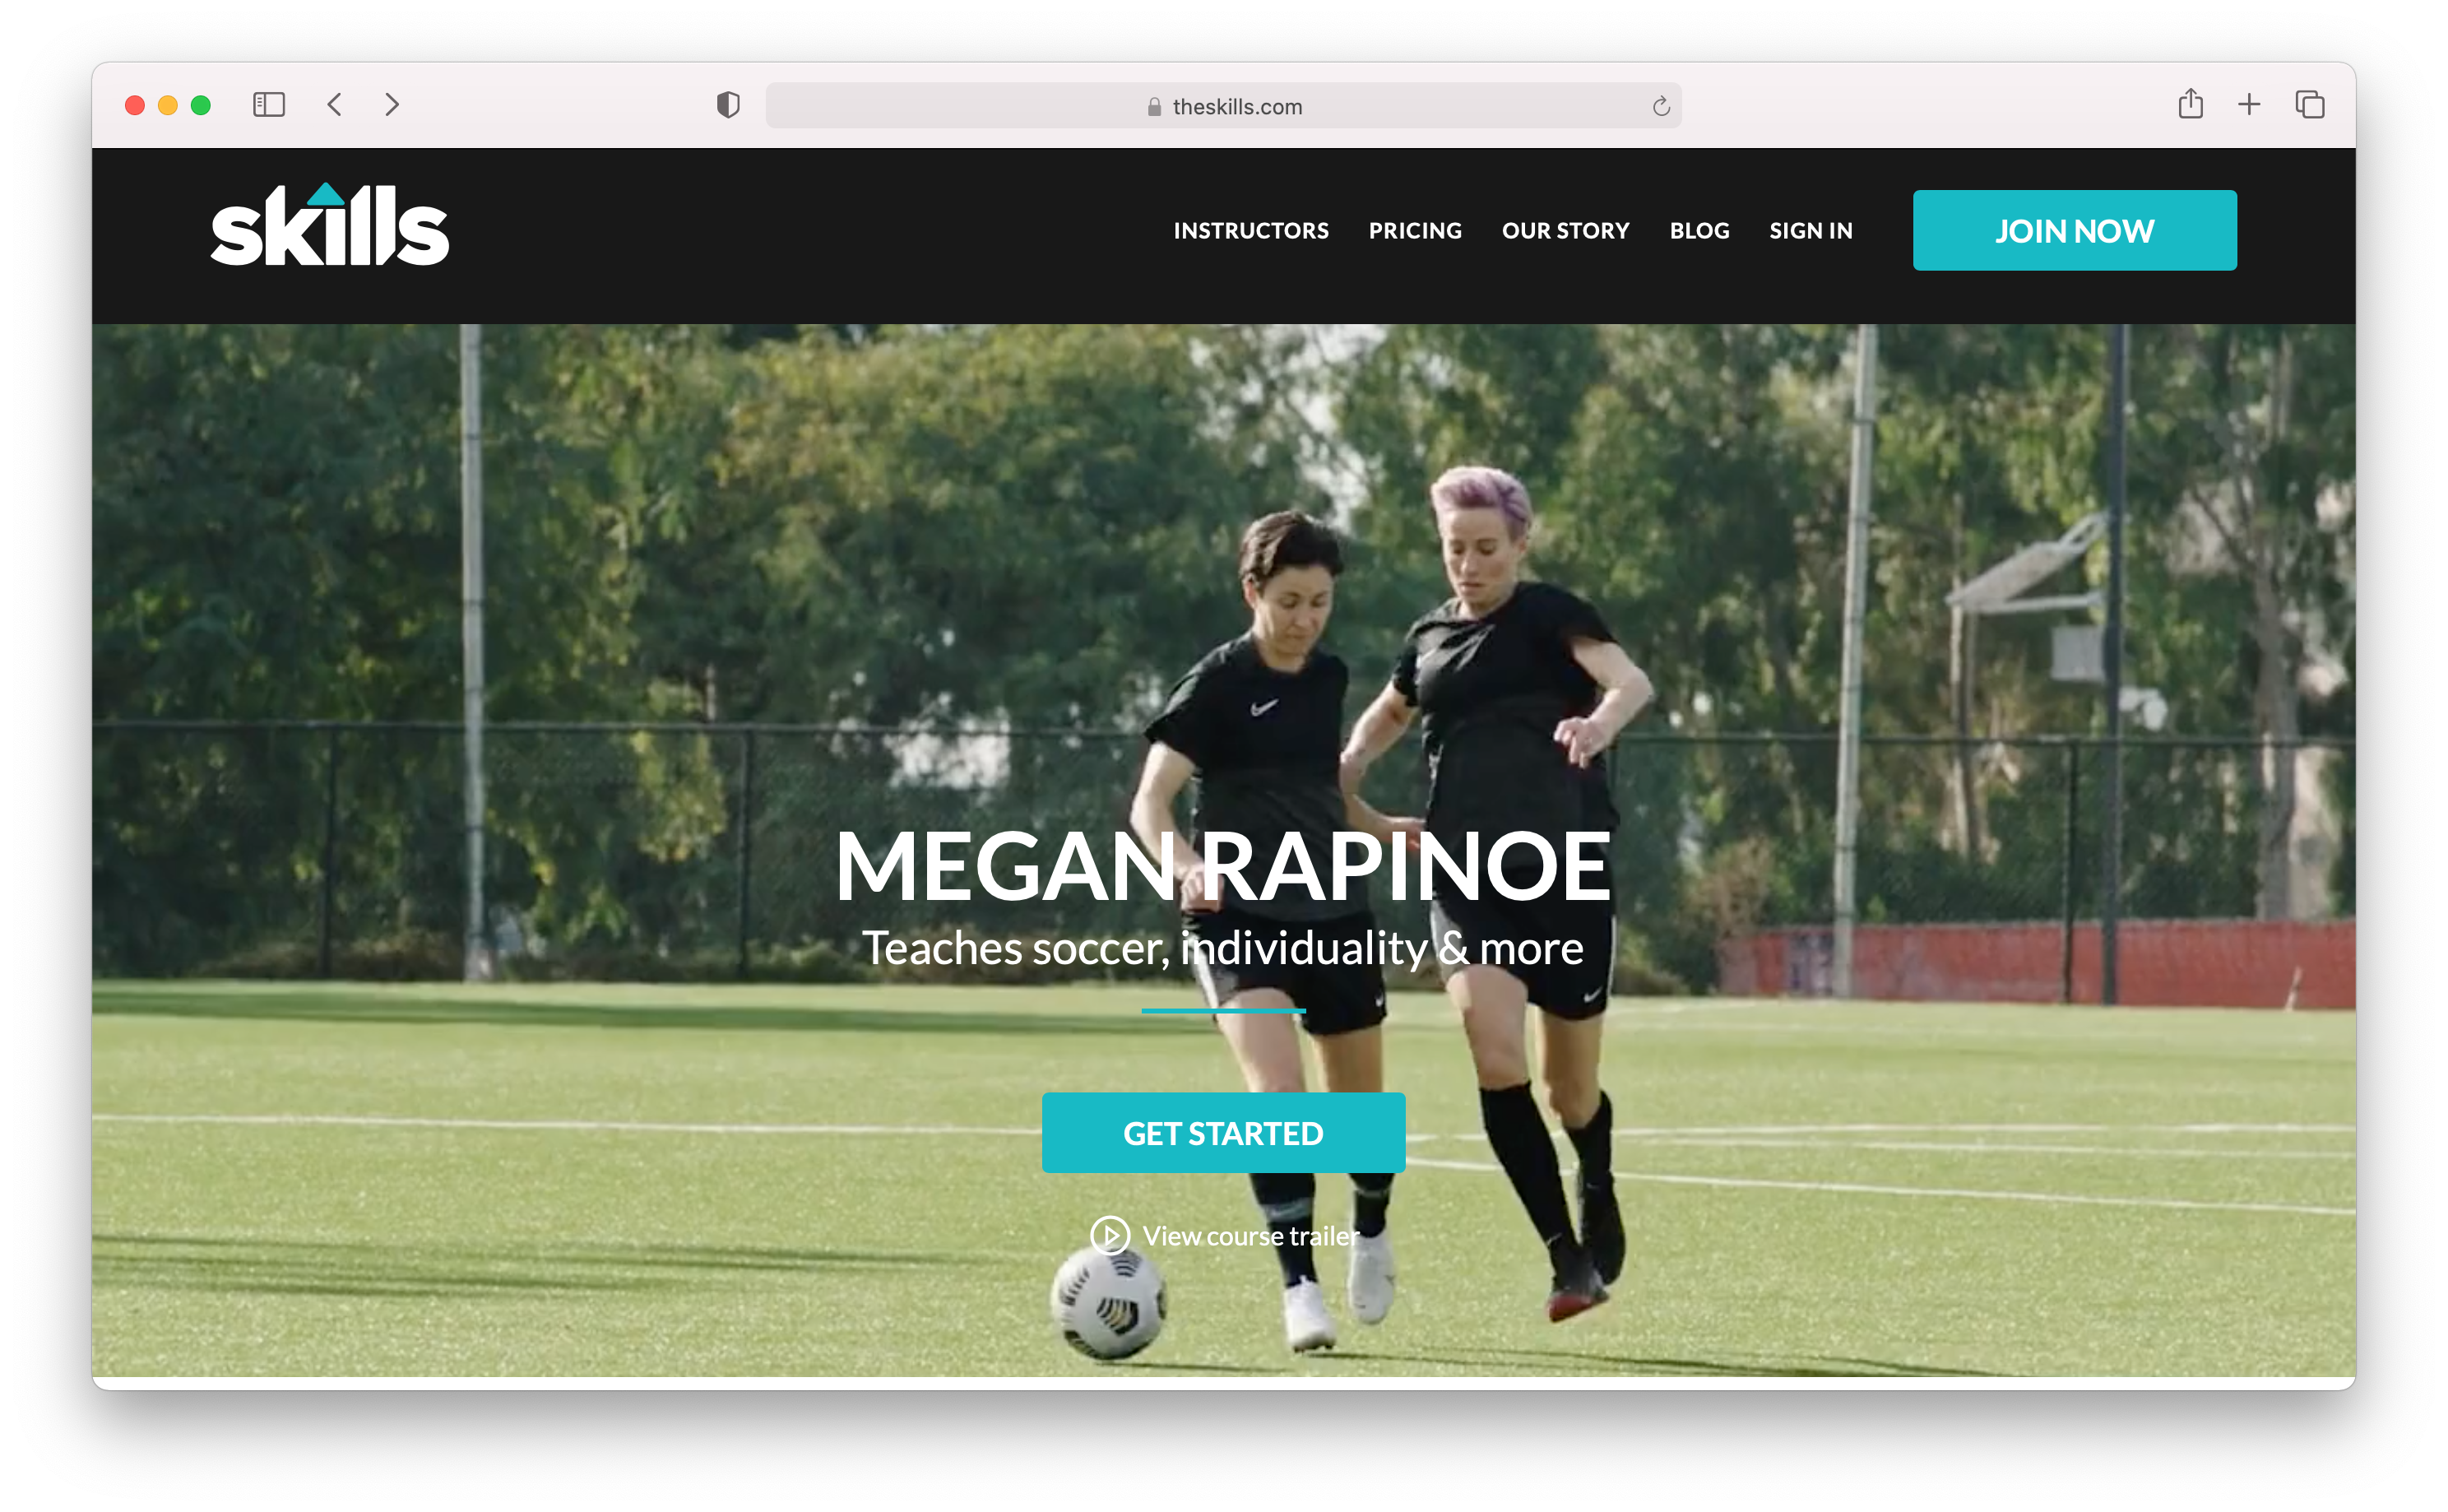 Megan Rapinoe on her course for the Skills